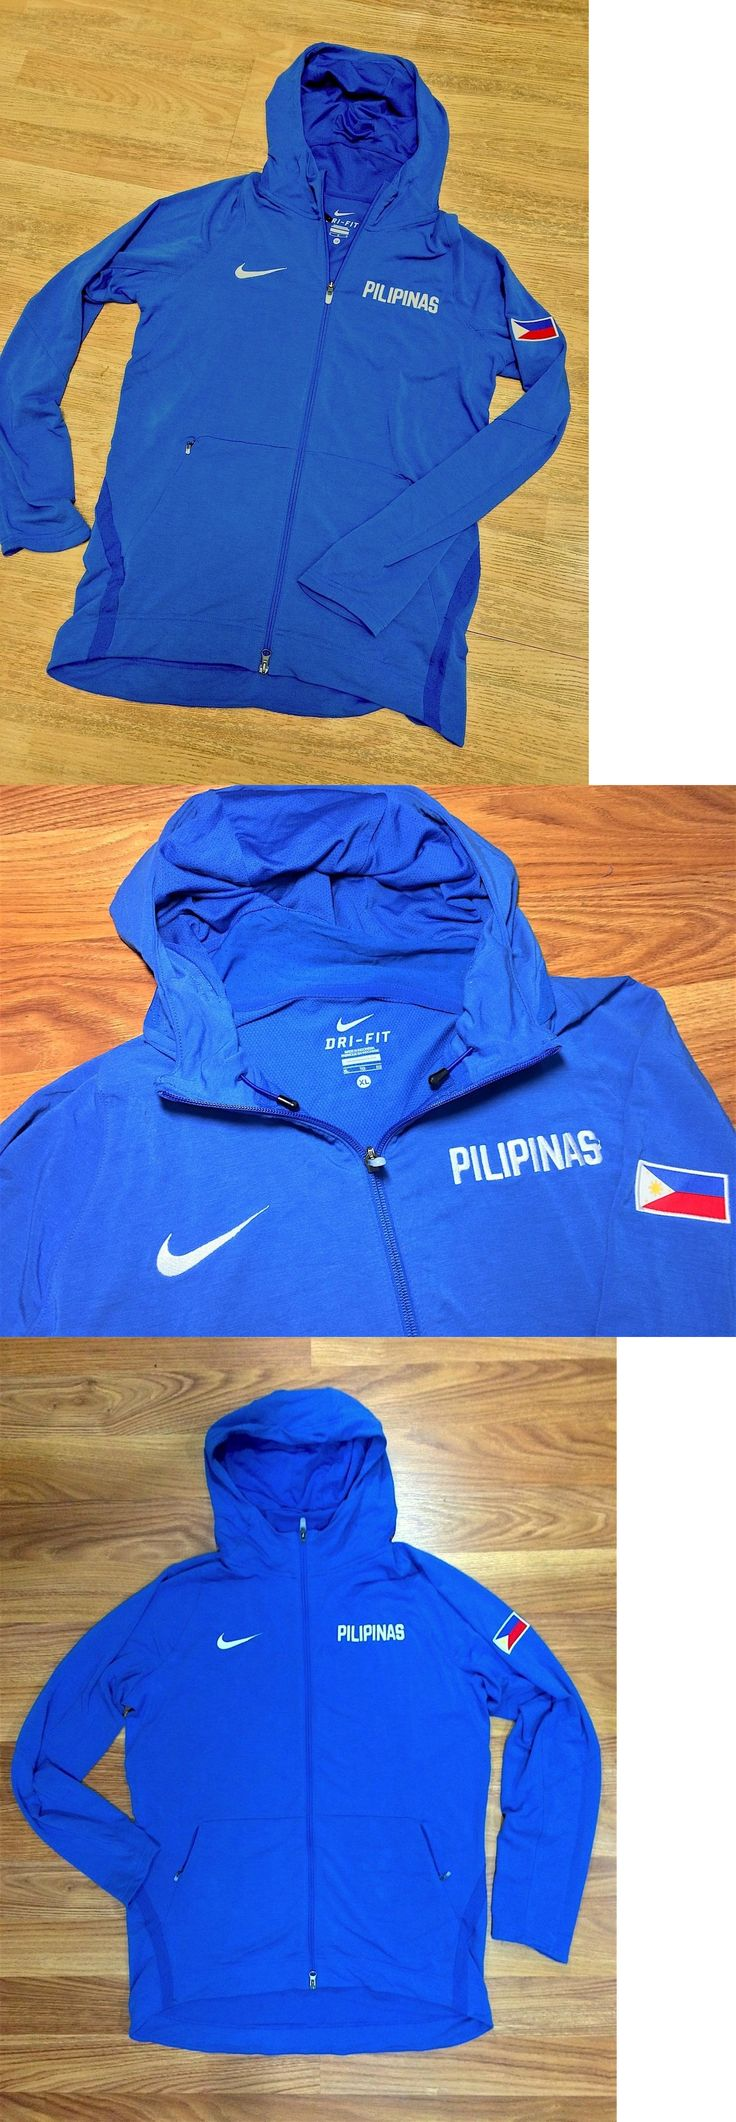 Olympics 27291: Rare Nike Philippines Basketball Team Hyper Elite Hoodie Gilas Pilipinas Fiba Xl -> BUY IT NOW ONLY: $149.99 on eBay!